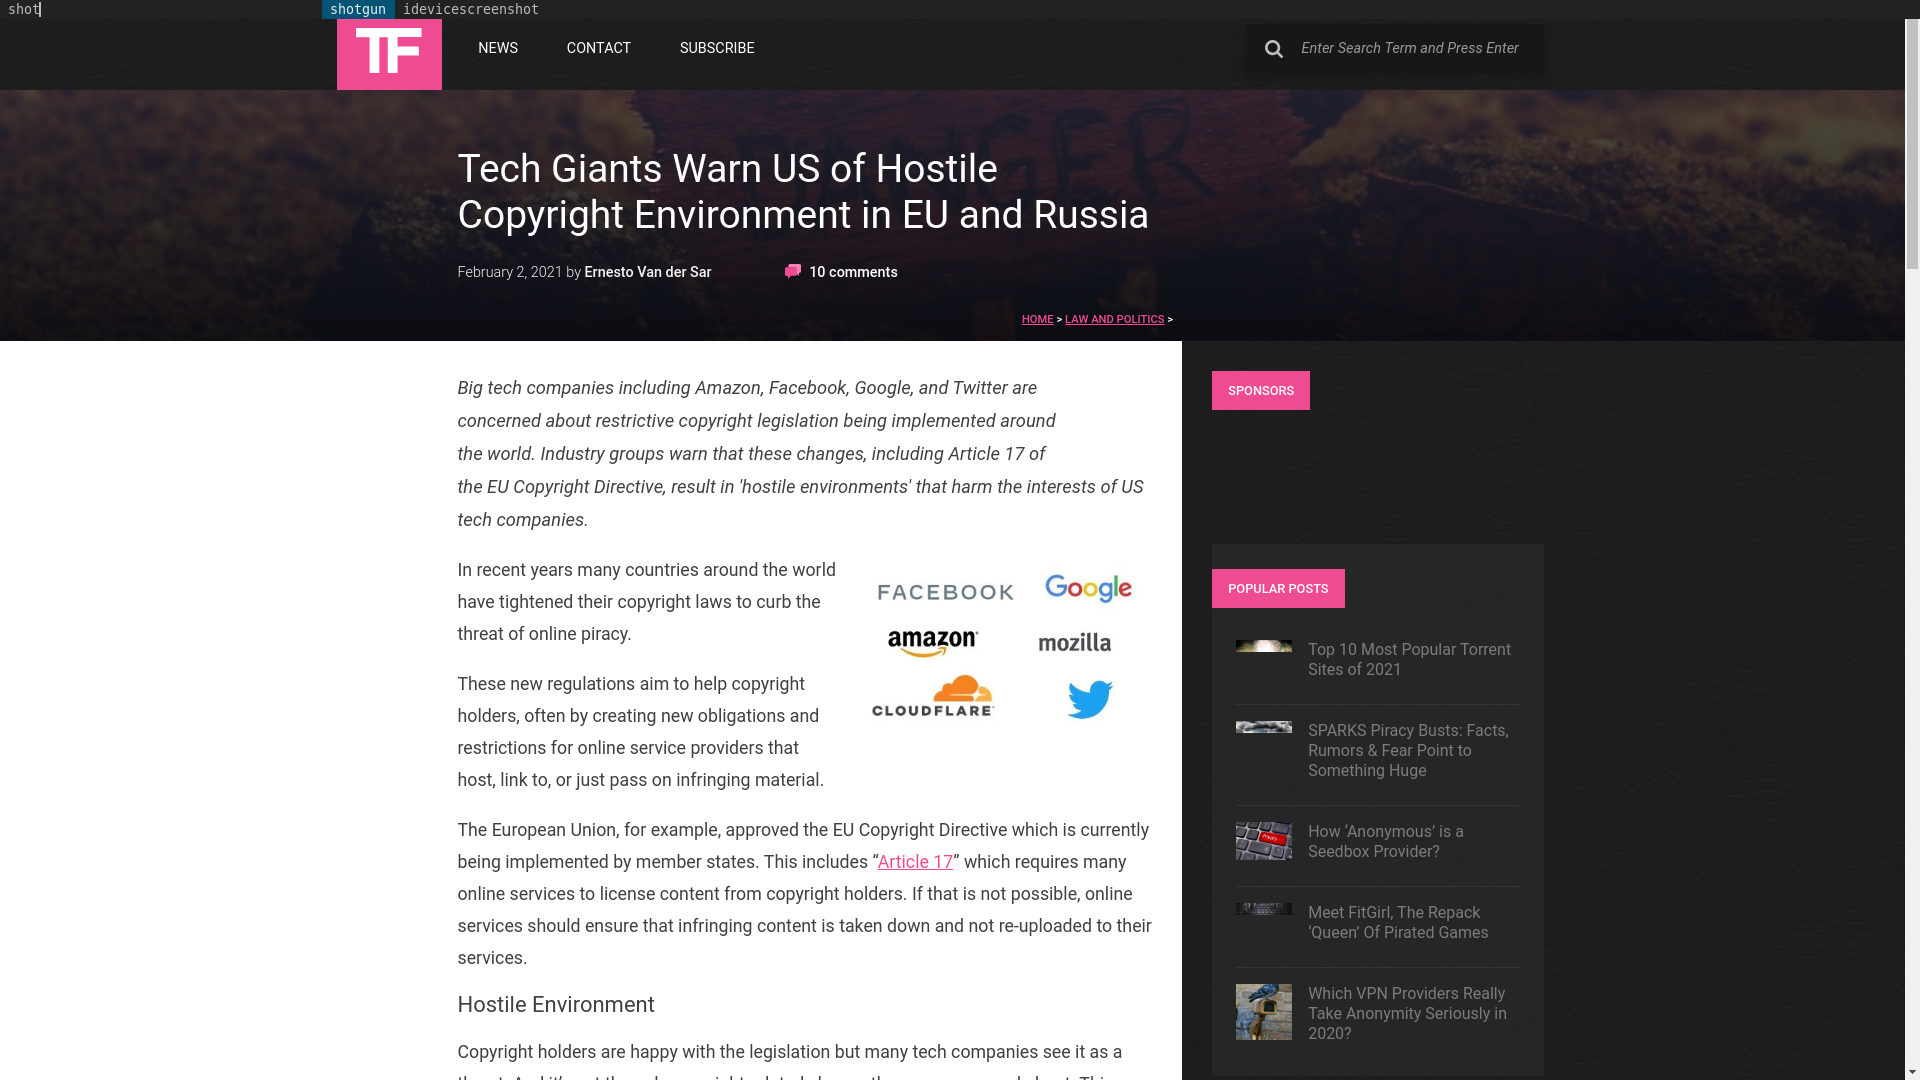 Fairness Rocks News Tech Giants Warn US of Hostile Copyright Environment in EU and Russia